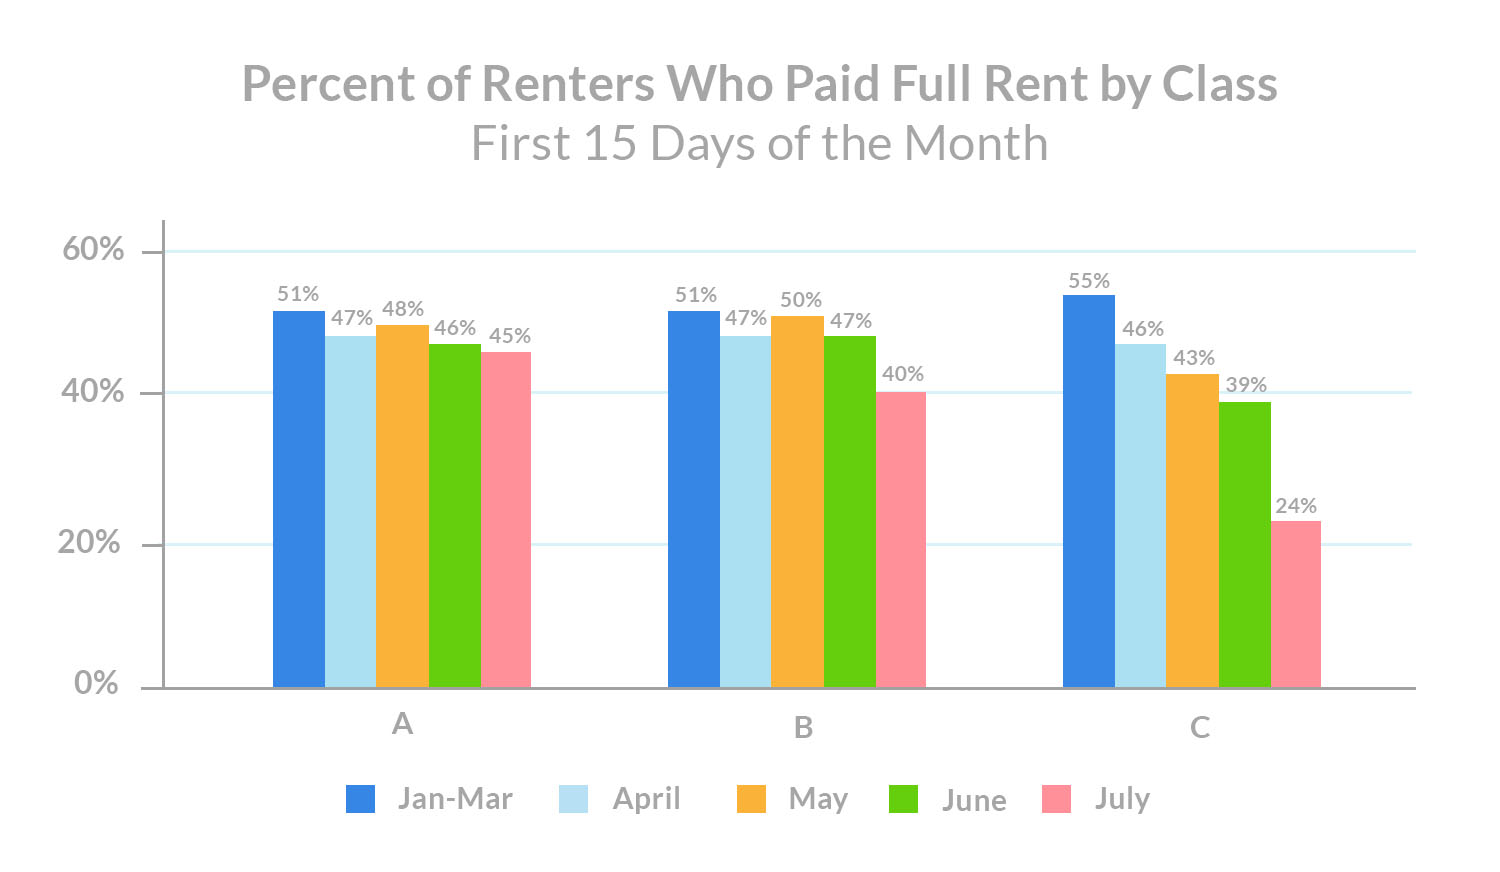 class-c-rent-payments-percent-of-renters-who-paid-full-rent-by-class